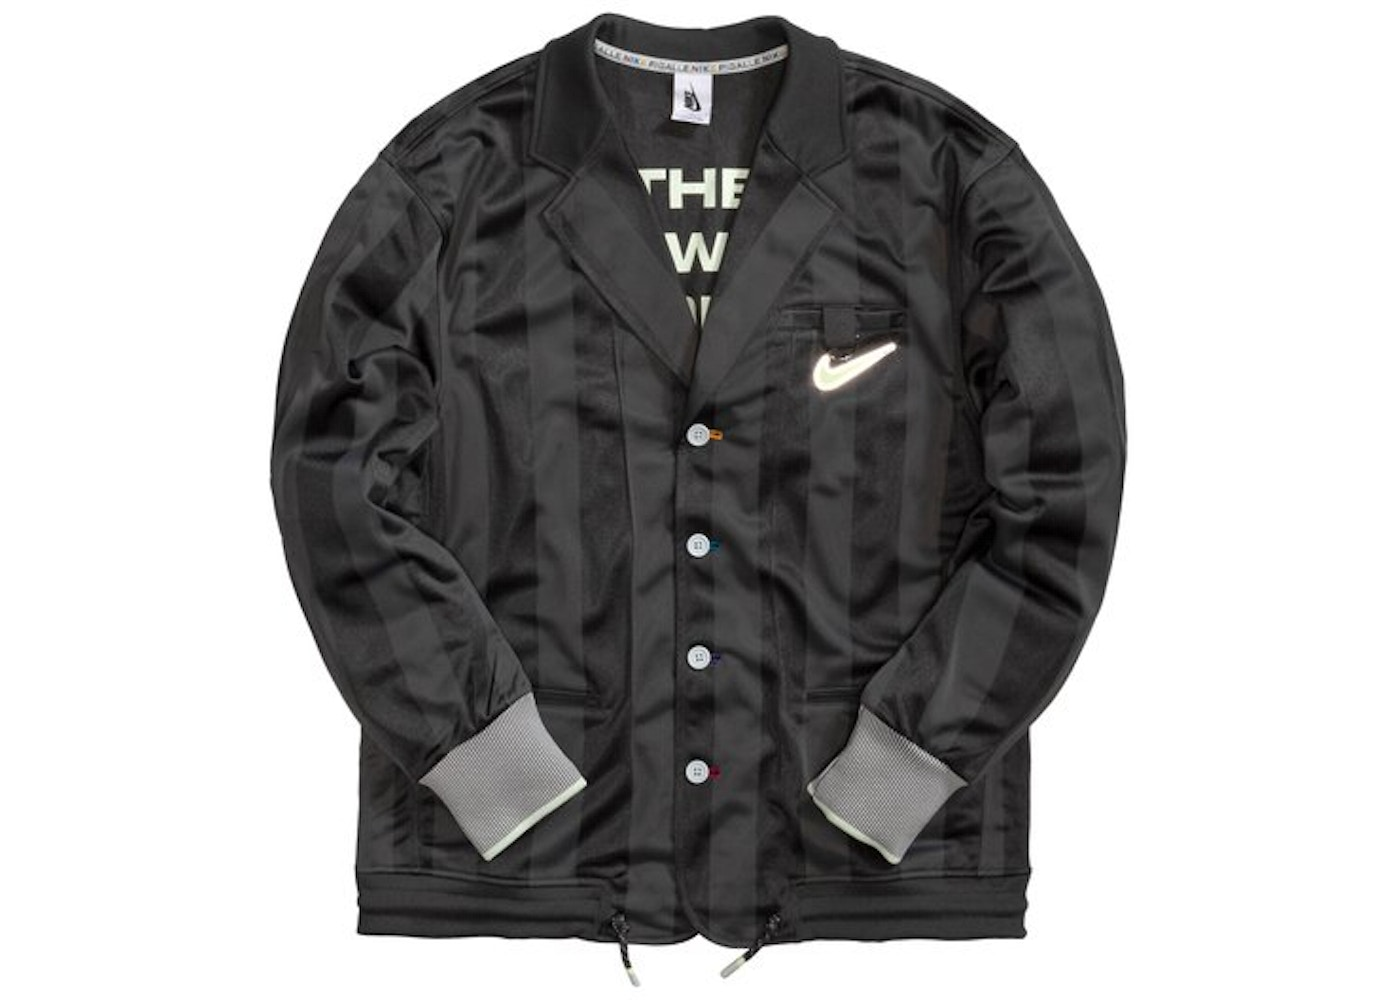 orden Optimismo izquierda  Nike x Pigalle Tracksuit Jacket Anthracite - SS20